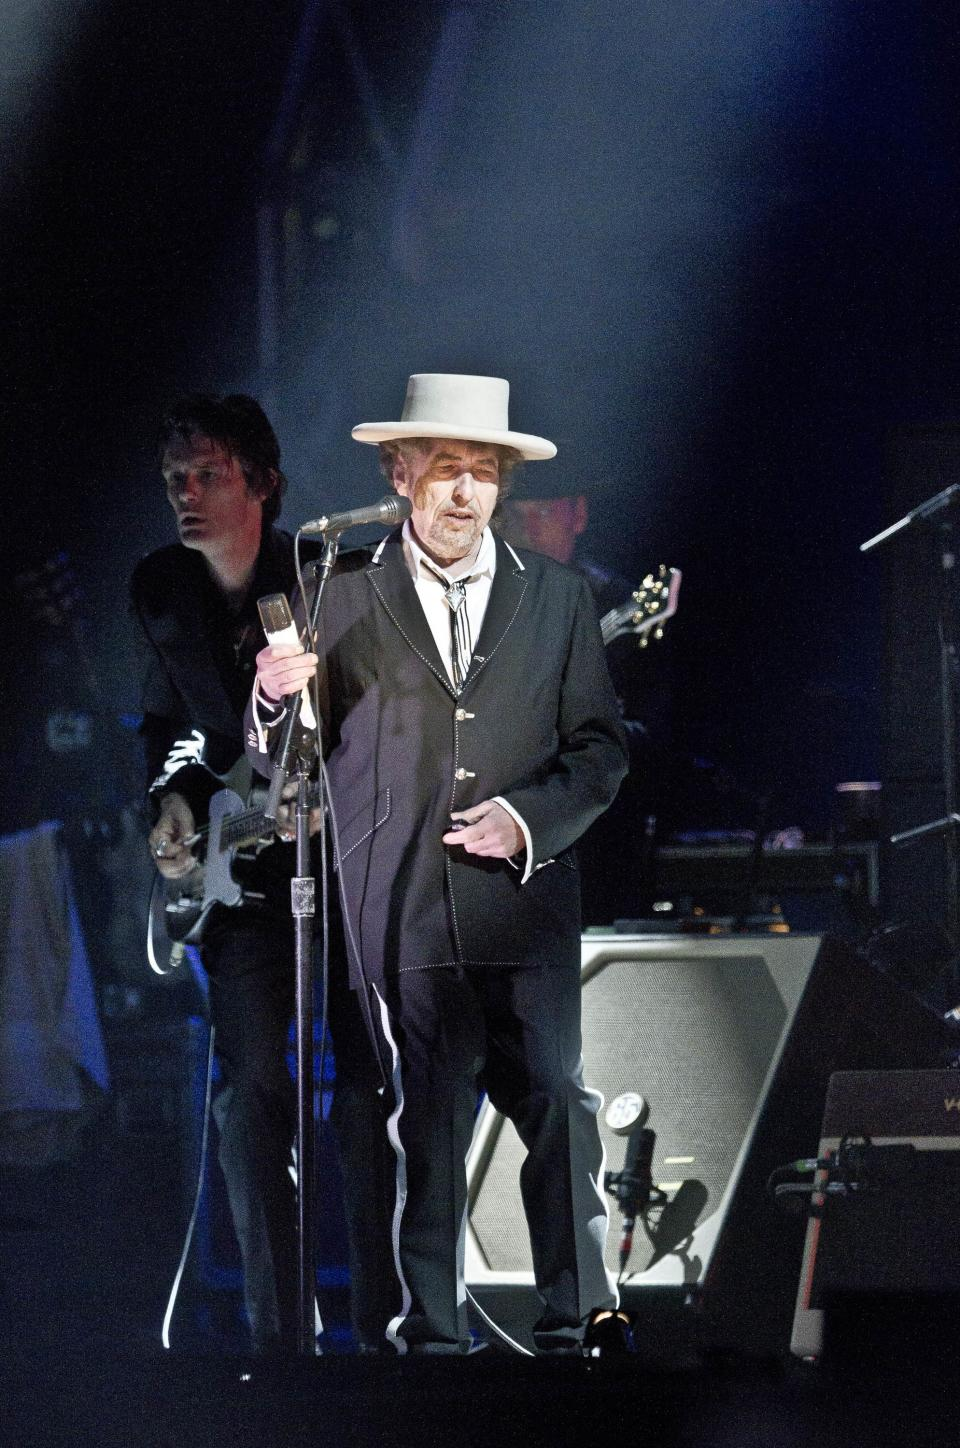 U.S. musician Bob Dylan performs weeks after his 70th birthday at the London Feis Festival, in Finsbury Park, Saturday, June 18, 2011. (AP Photo/Joel Ryan)